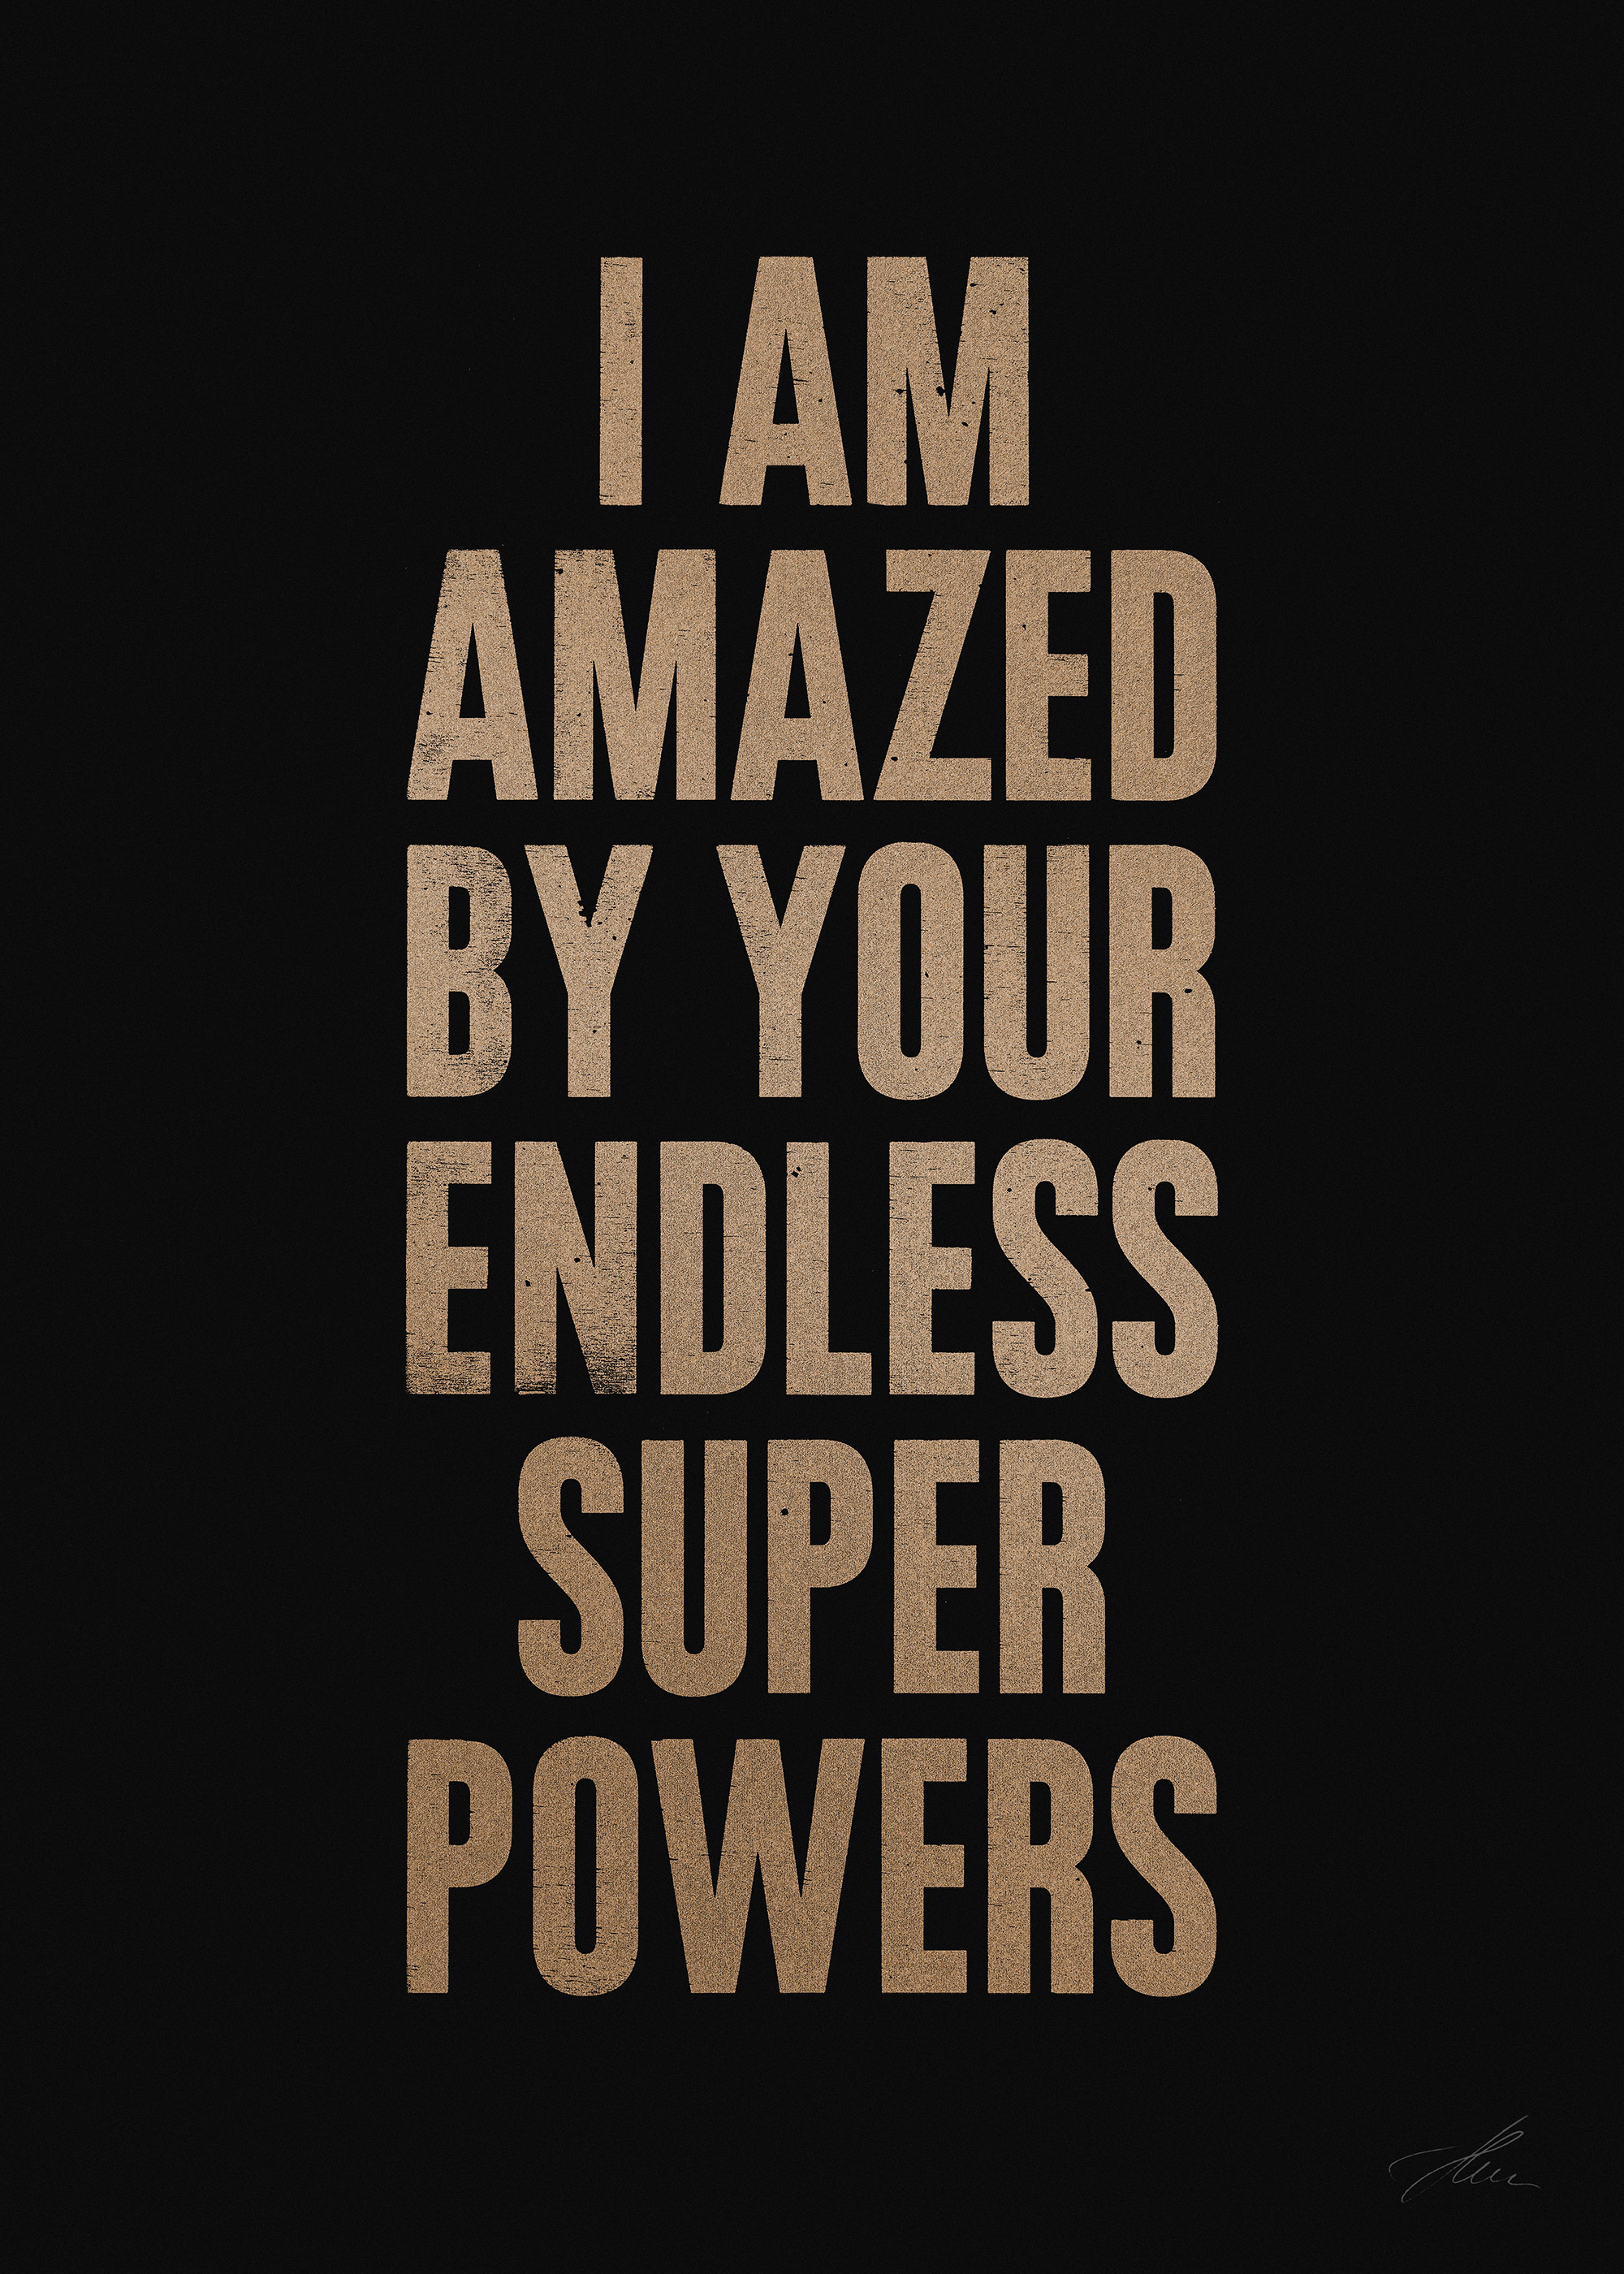 I AM AMAZED BY YOUR ENDLESS SUPER POWERS (Gold/Black)